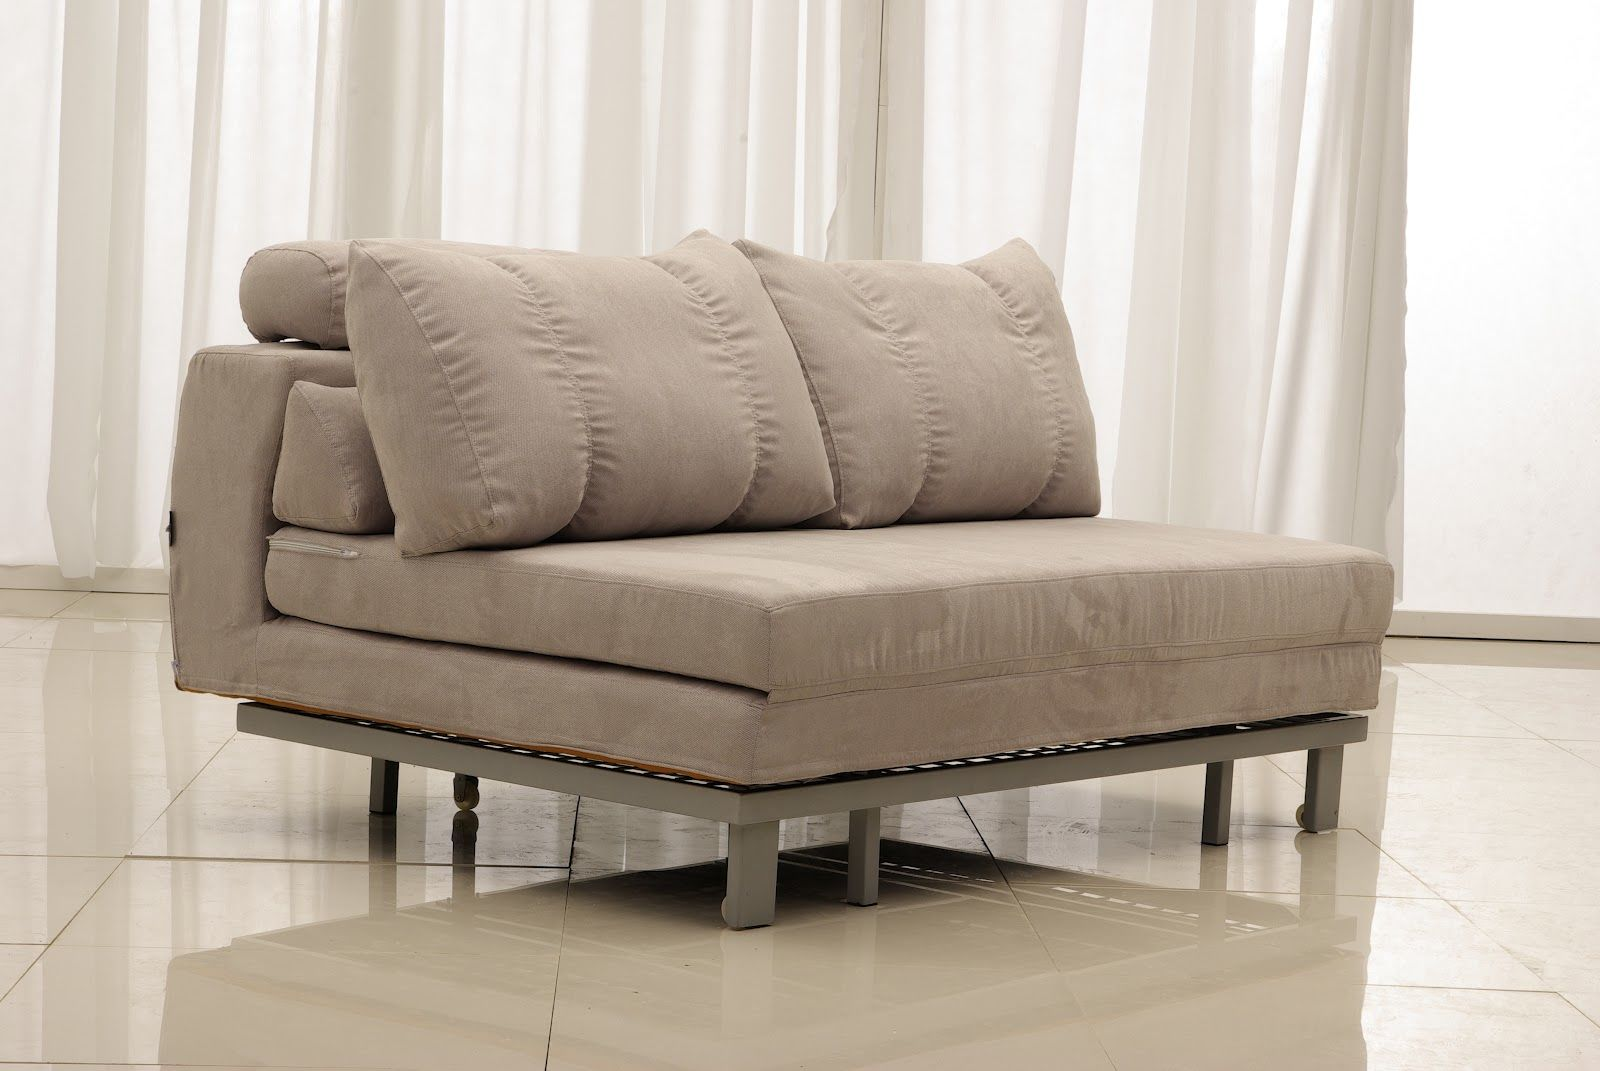 Comfortable Sofa Bed Mattress Best 25 Sleeper Sofa